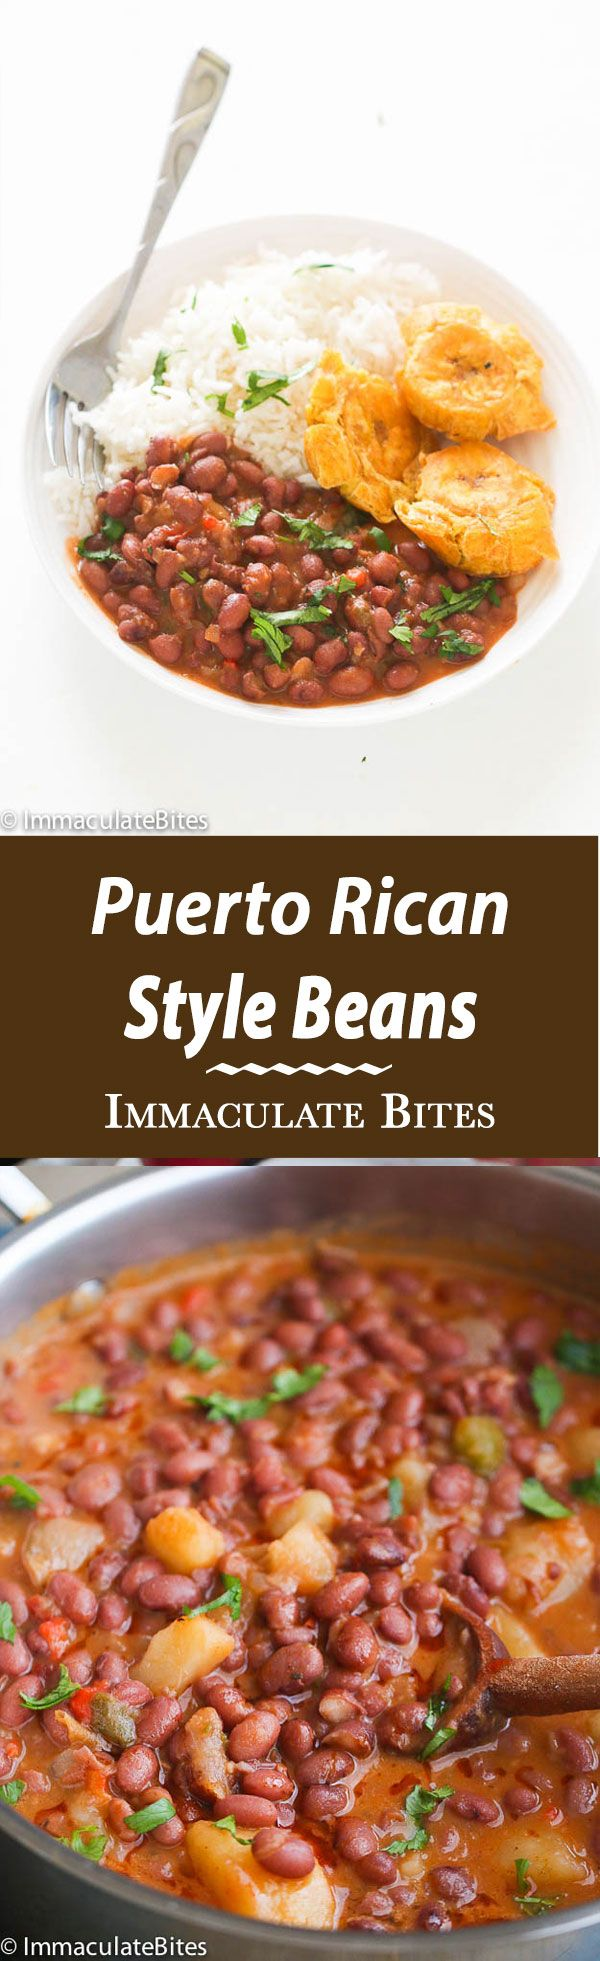 Puerto Rican Style beans – A  hearty red beans simmered in an aromatic sauce with  big bold flavors. Quick Easy and Simply Delicious. If you like a an easy yet tasty meat free beans then, you might think this Puerto Rican Beans is about the most delicious beans to cook up. It's a hearty stew of red beans, …